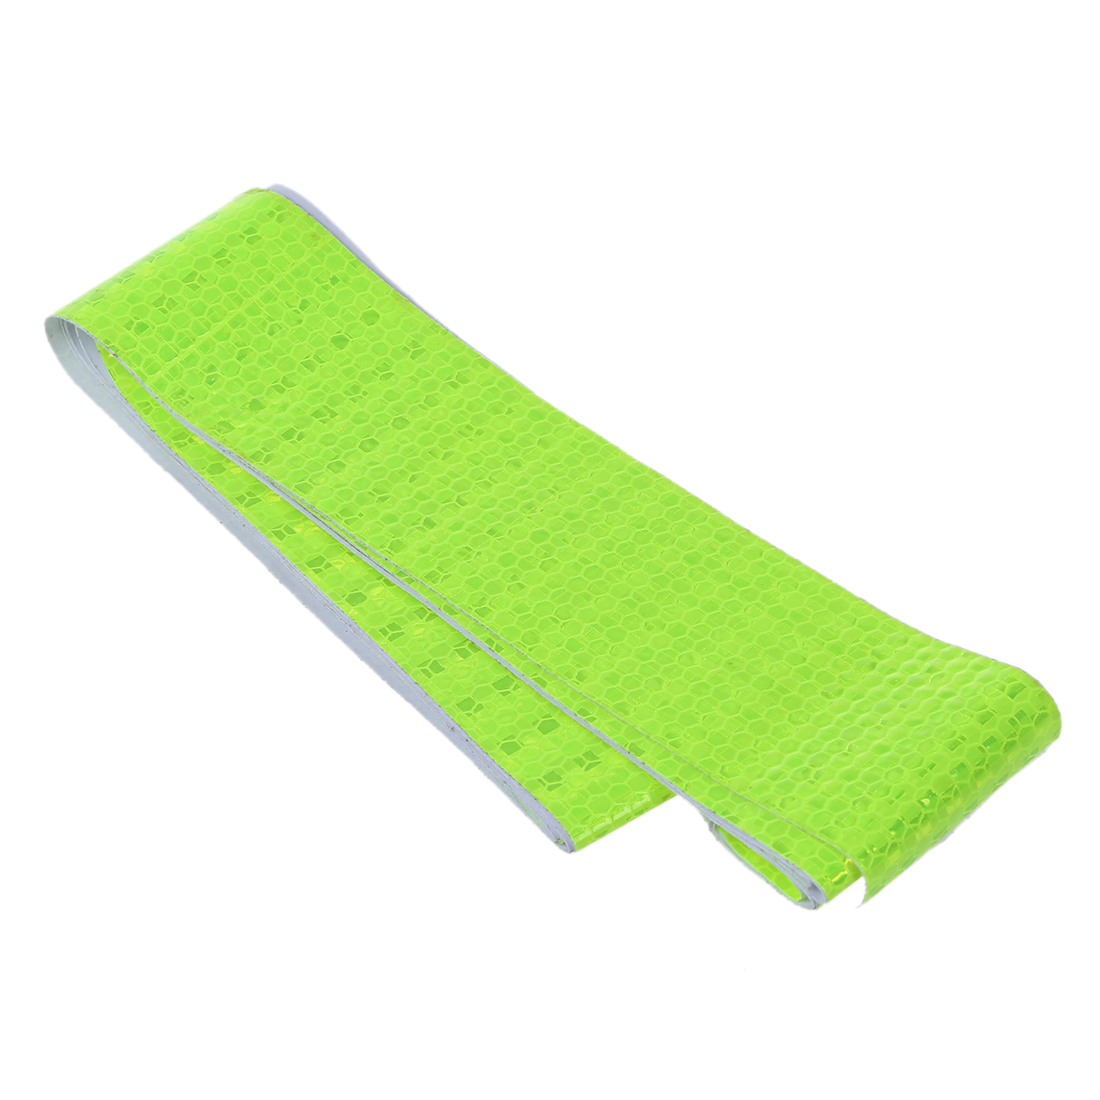 MOOL 5cm X 3m Fluorescence Yellow Night Reflective Safety Warning Conspicuity Tape